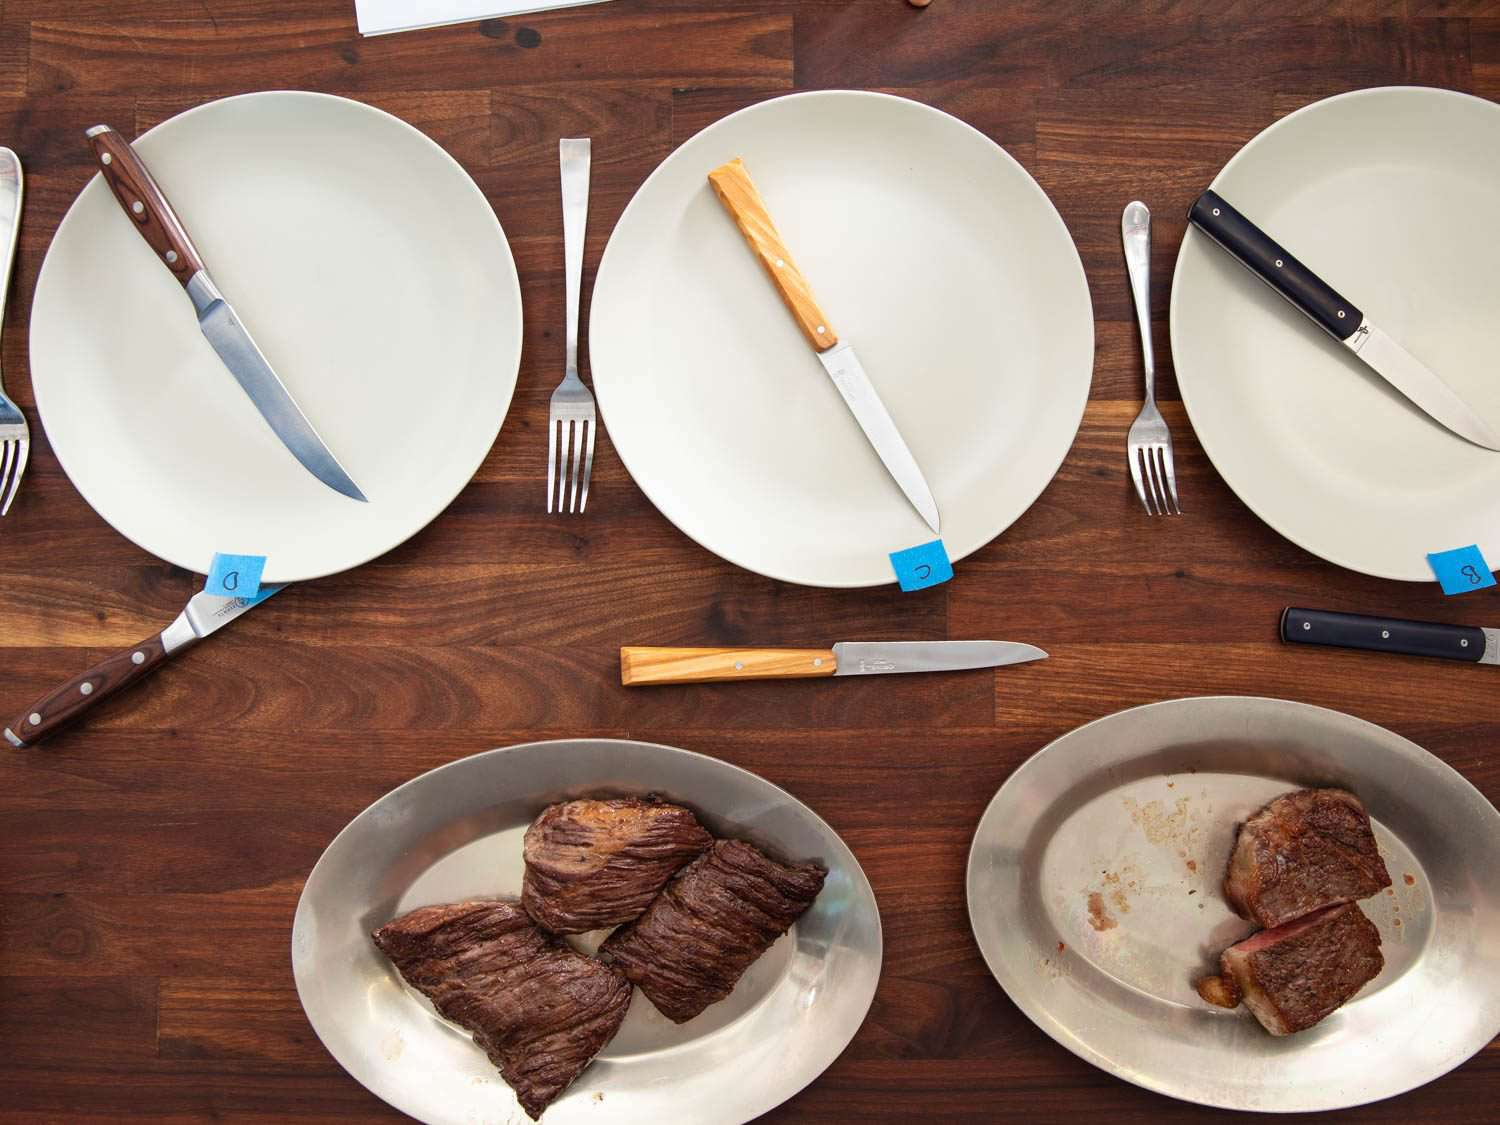 Overhead shot of the set-up for the steak knife equipment test, with different knives laid out with different cuts of cooked steak.